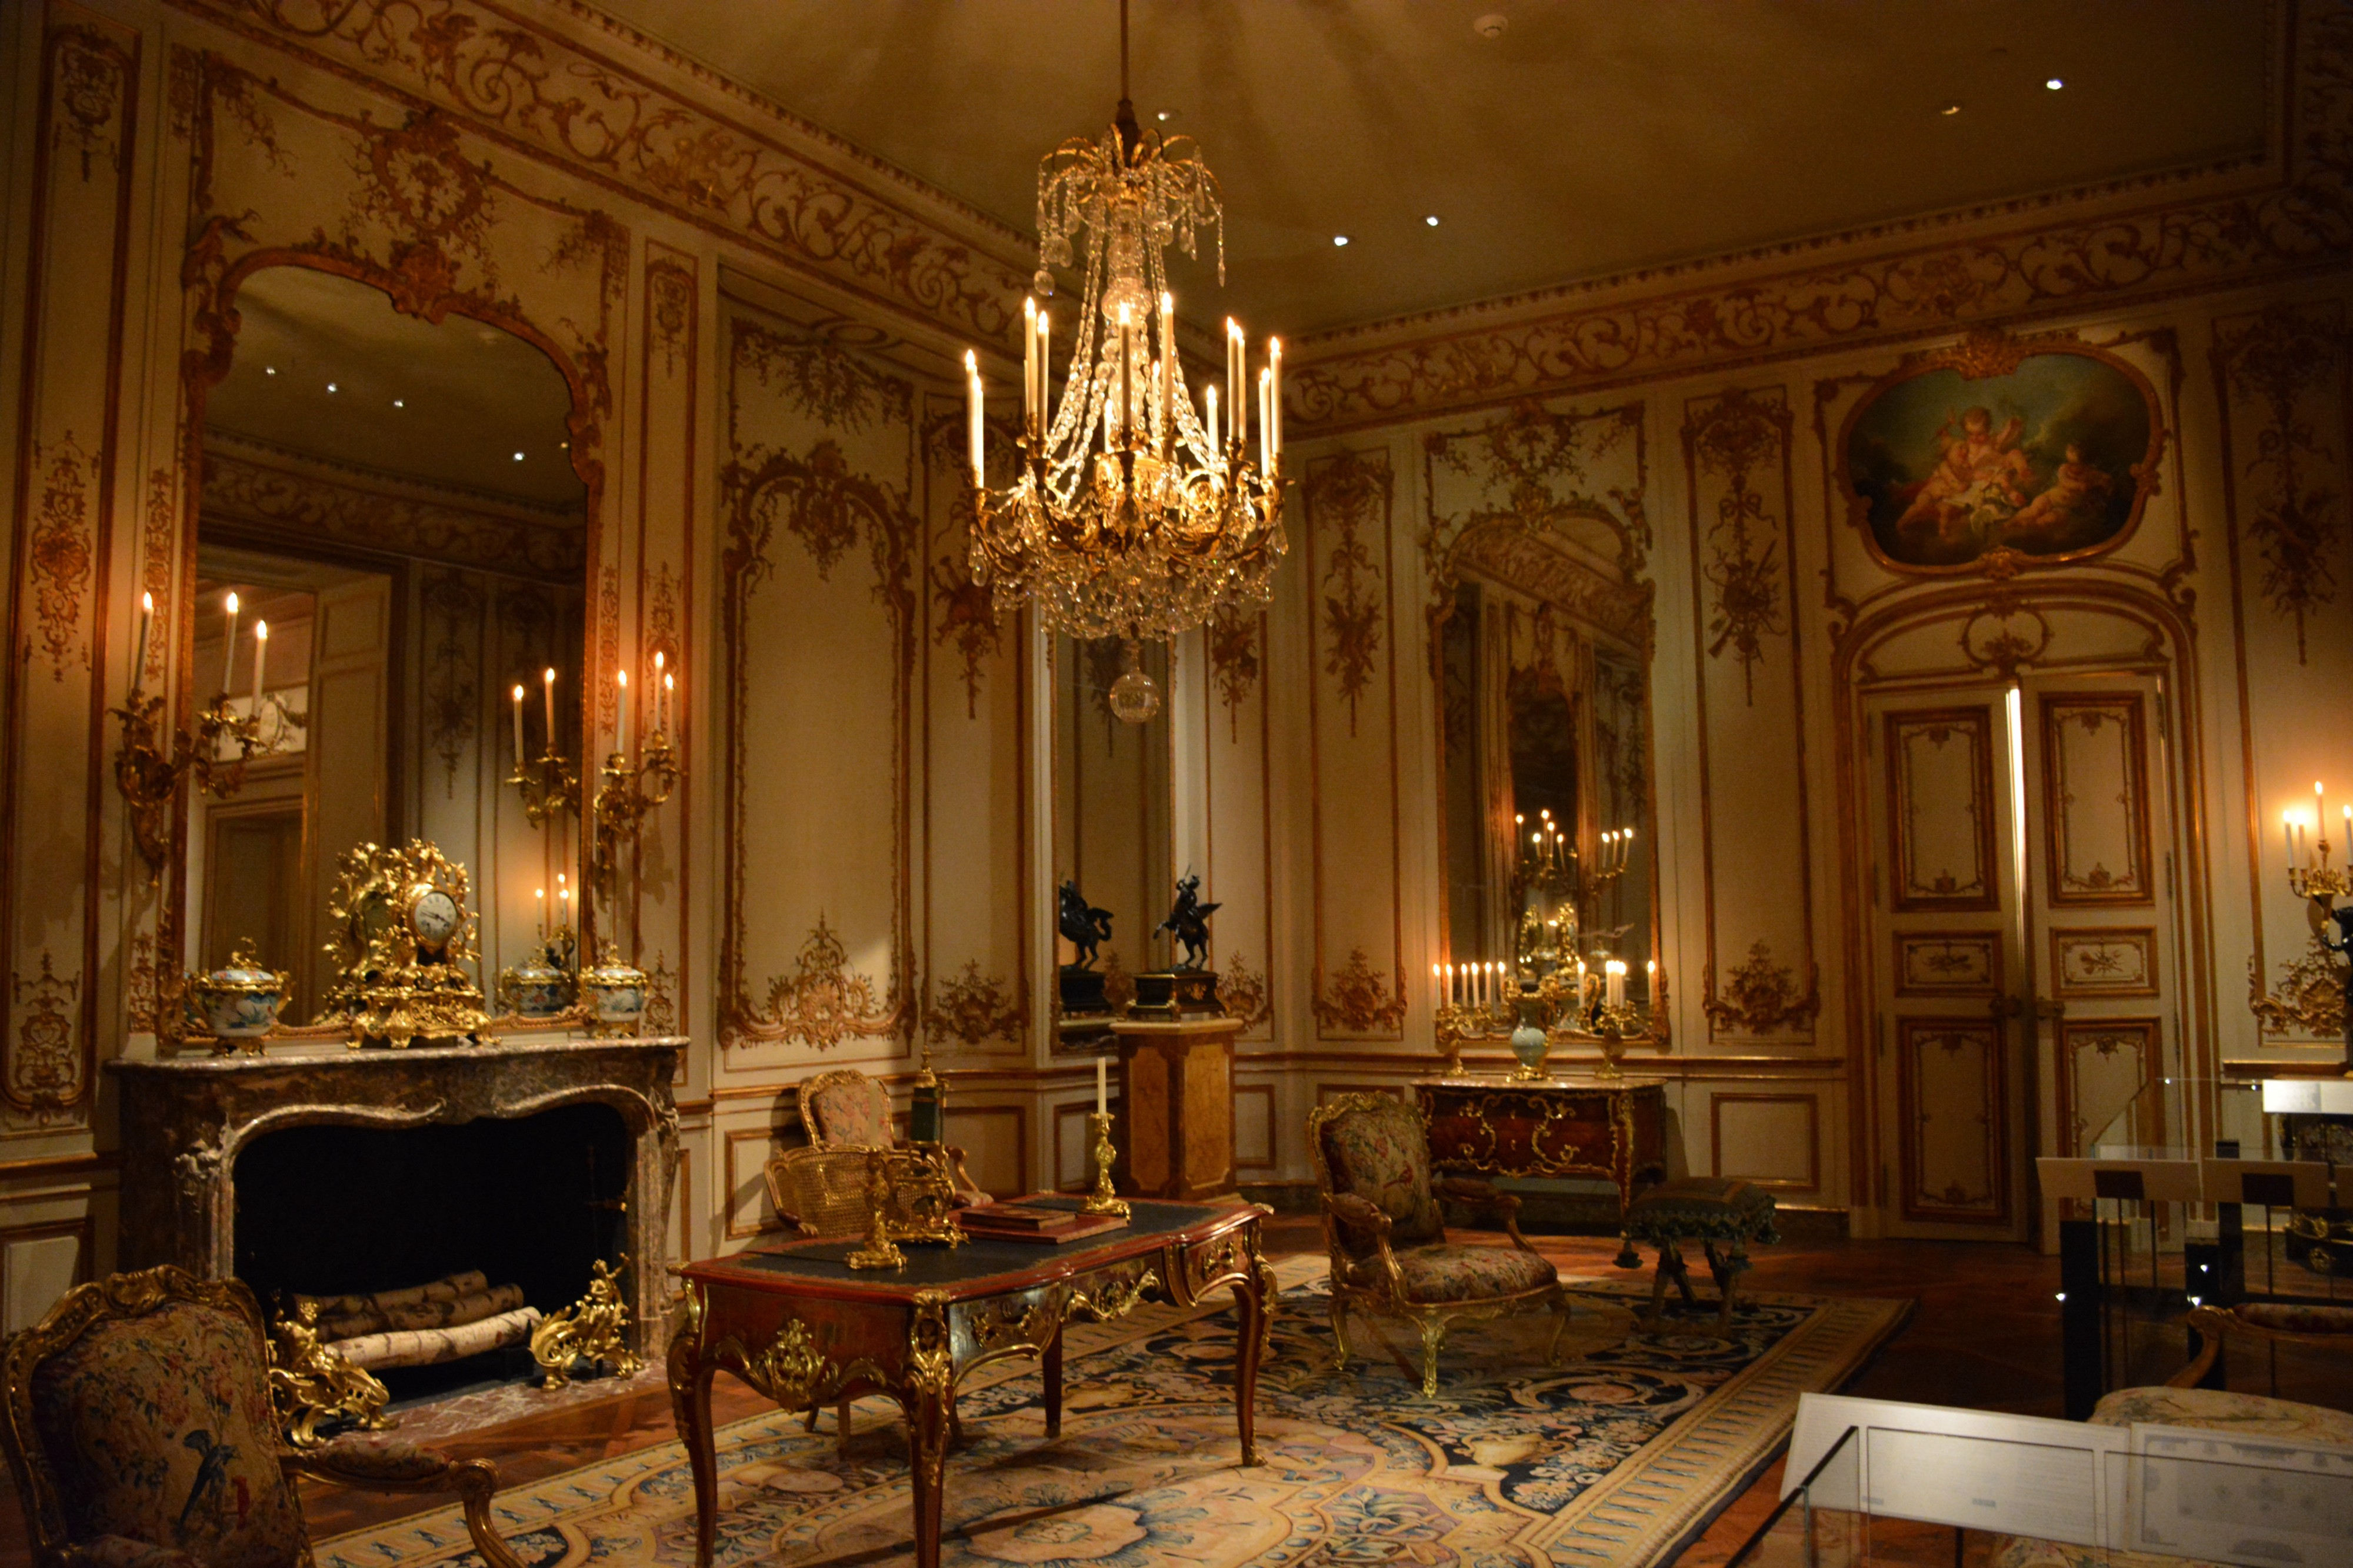 A luxcrious living room